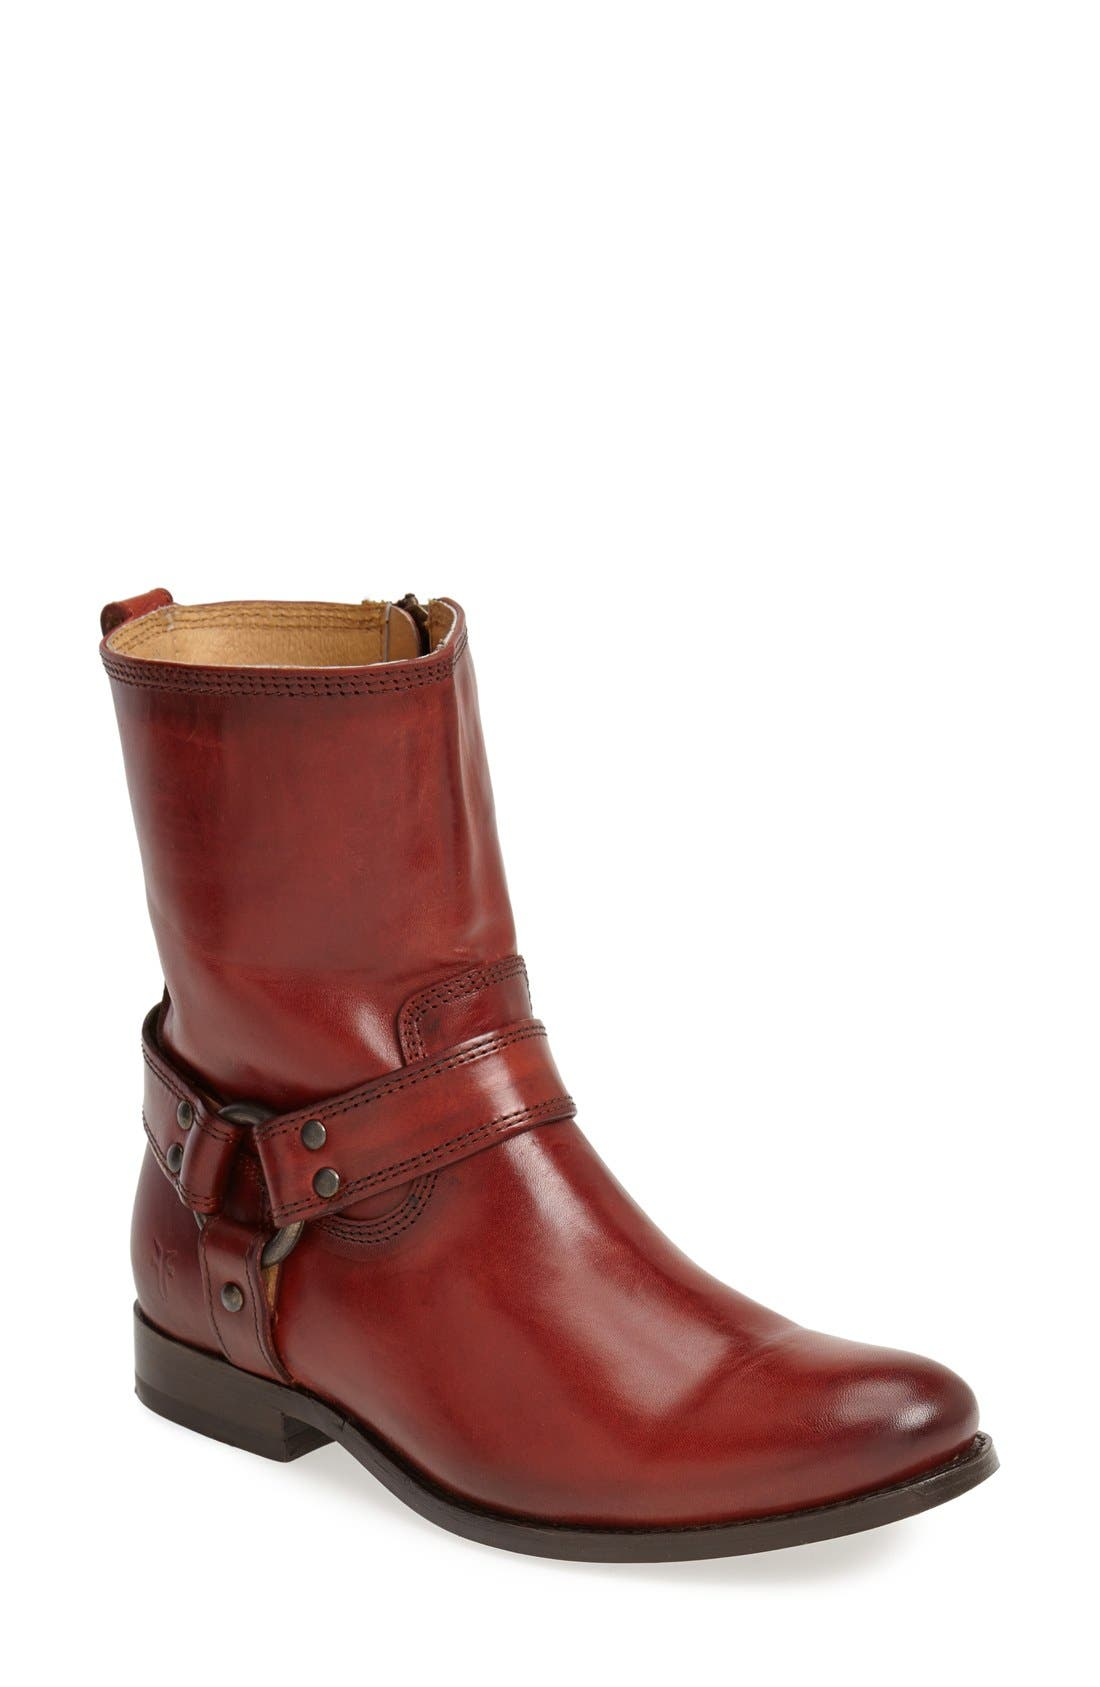 Alternate Image 1 Selected - Frye 'Melissa' Harness Boot (Women)